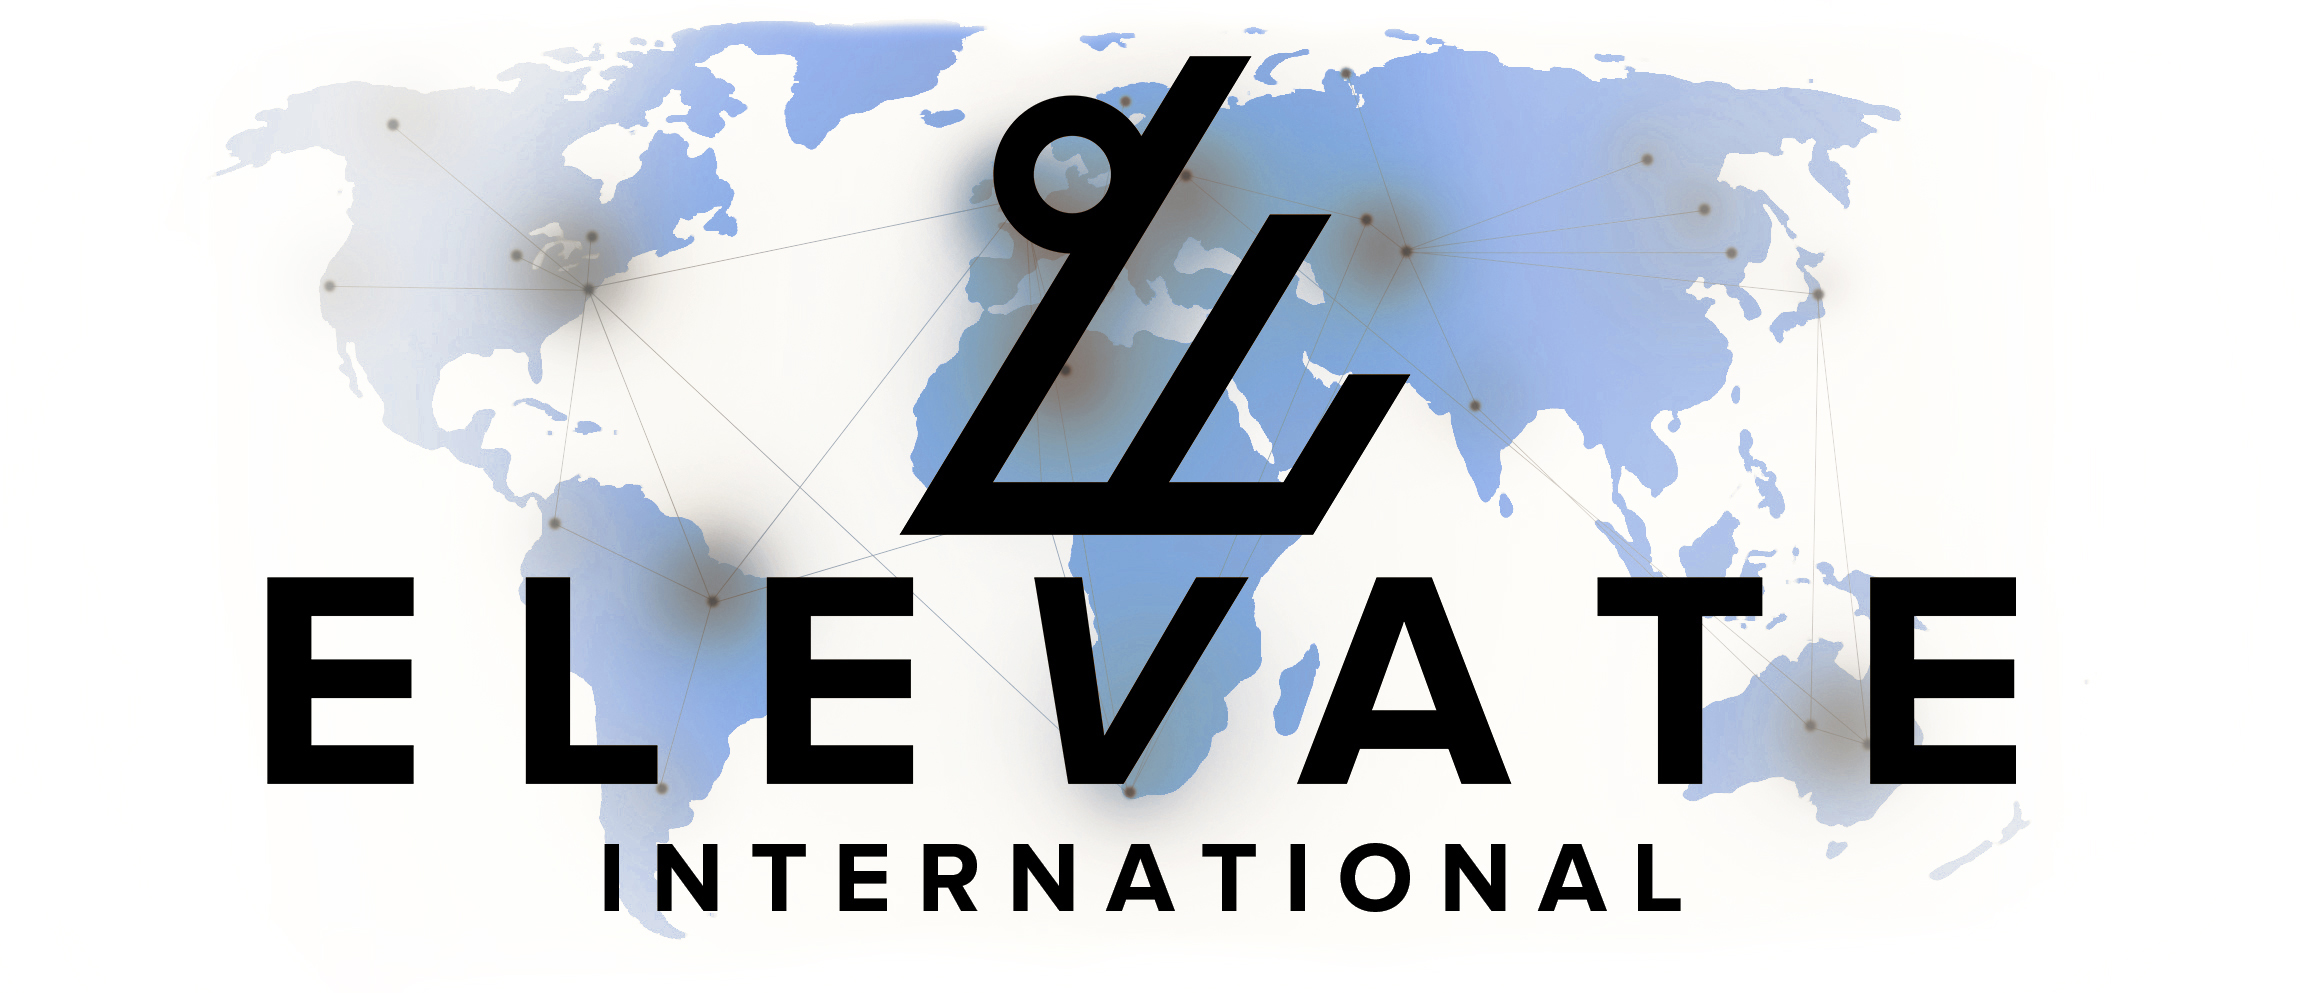 Elevate International Inverted Blue Whiter.jpg